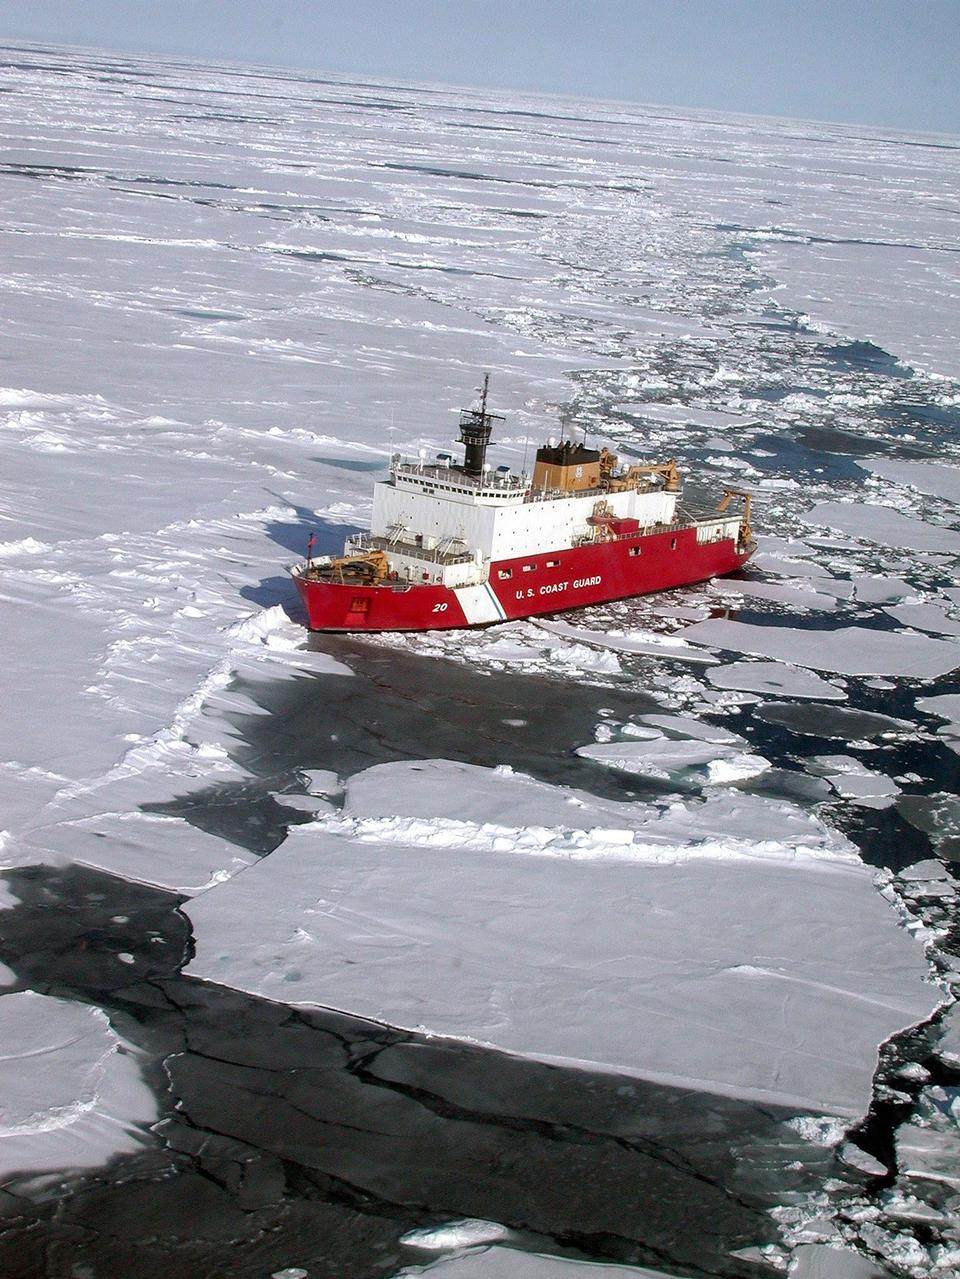 Free Icebreaker ship on the ice in the sea.